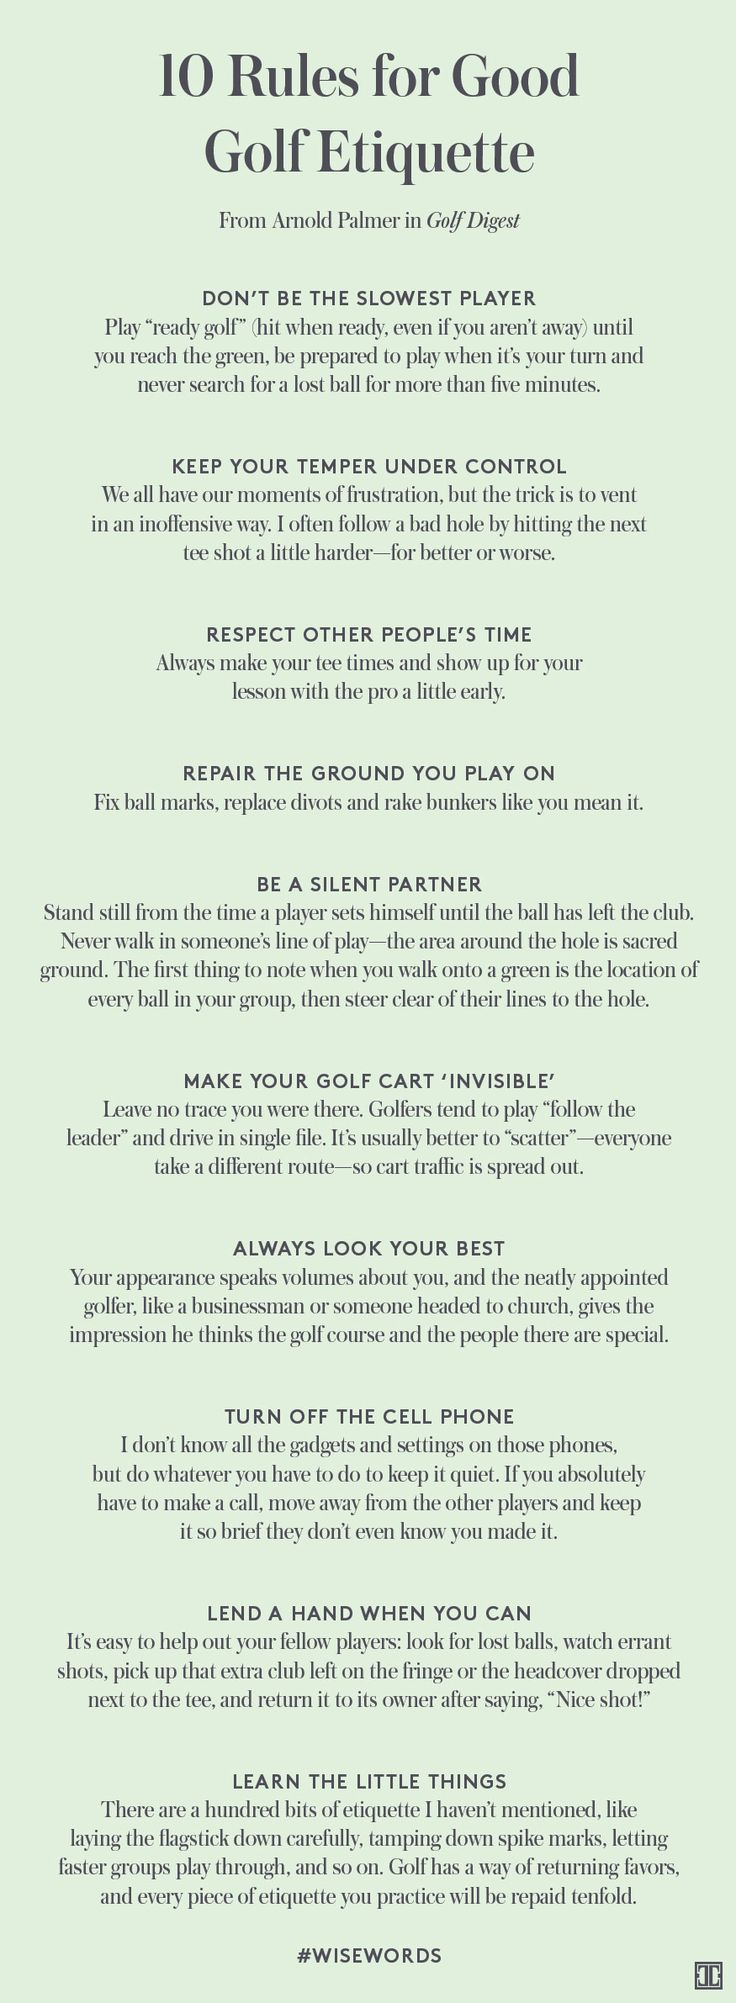 Golf Tips for a good Golf Etiquette